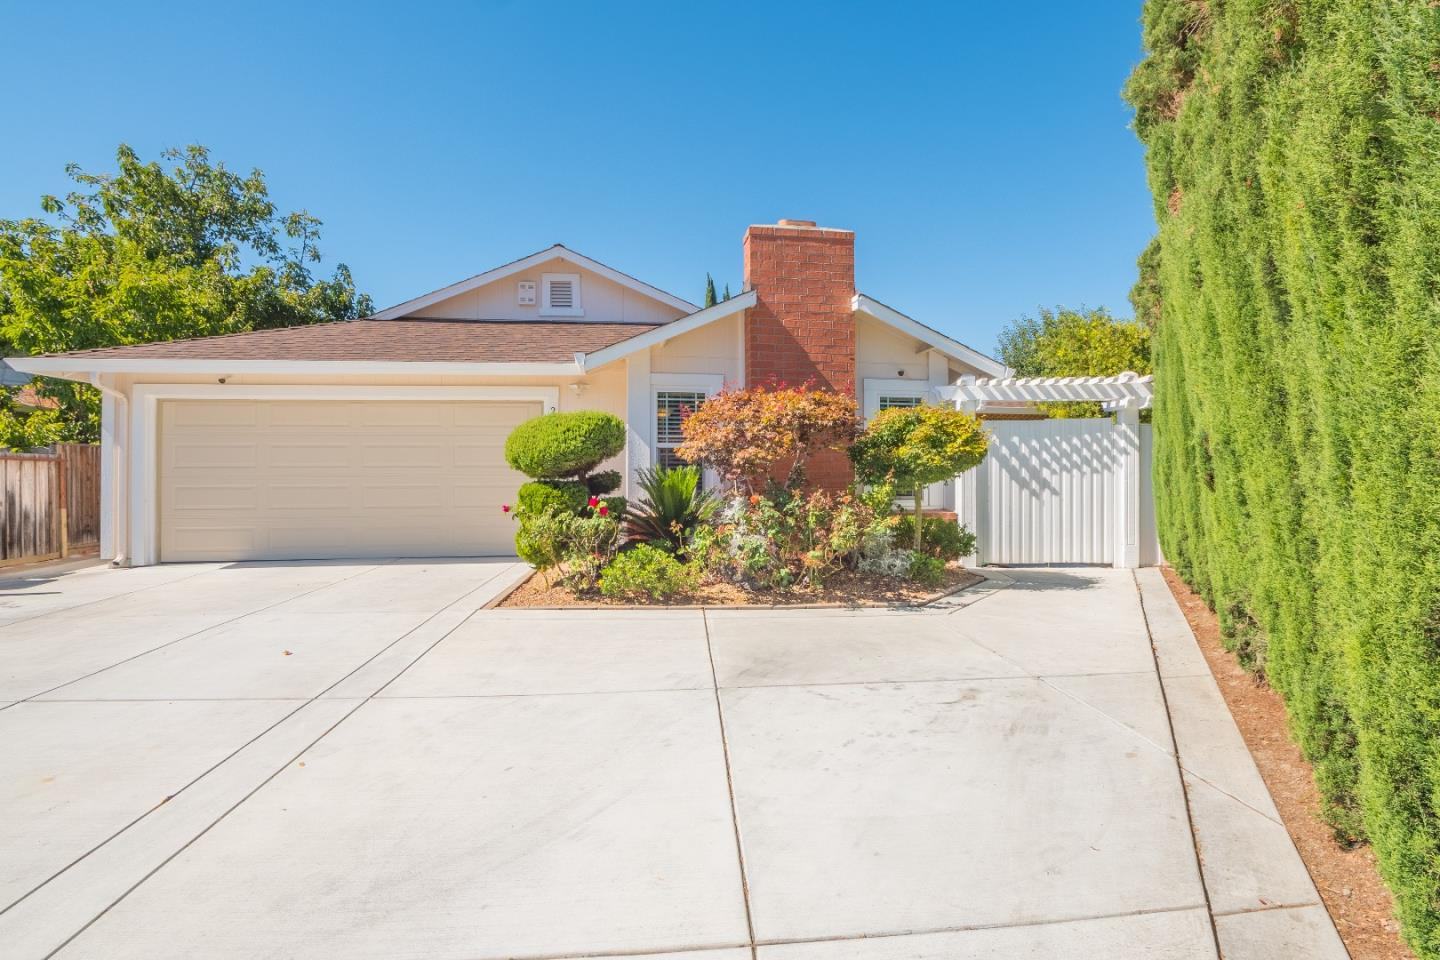 Additional photo for property listing at 2517 Sedlak Court  San Jose, カリフォルニア 95148 アメリカ合衆国